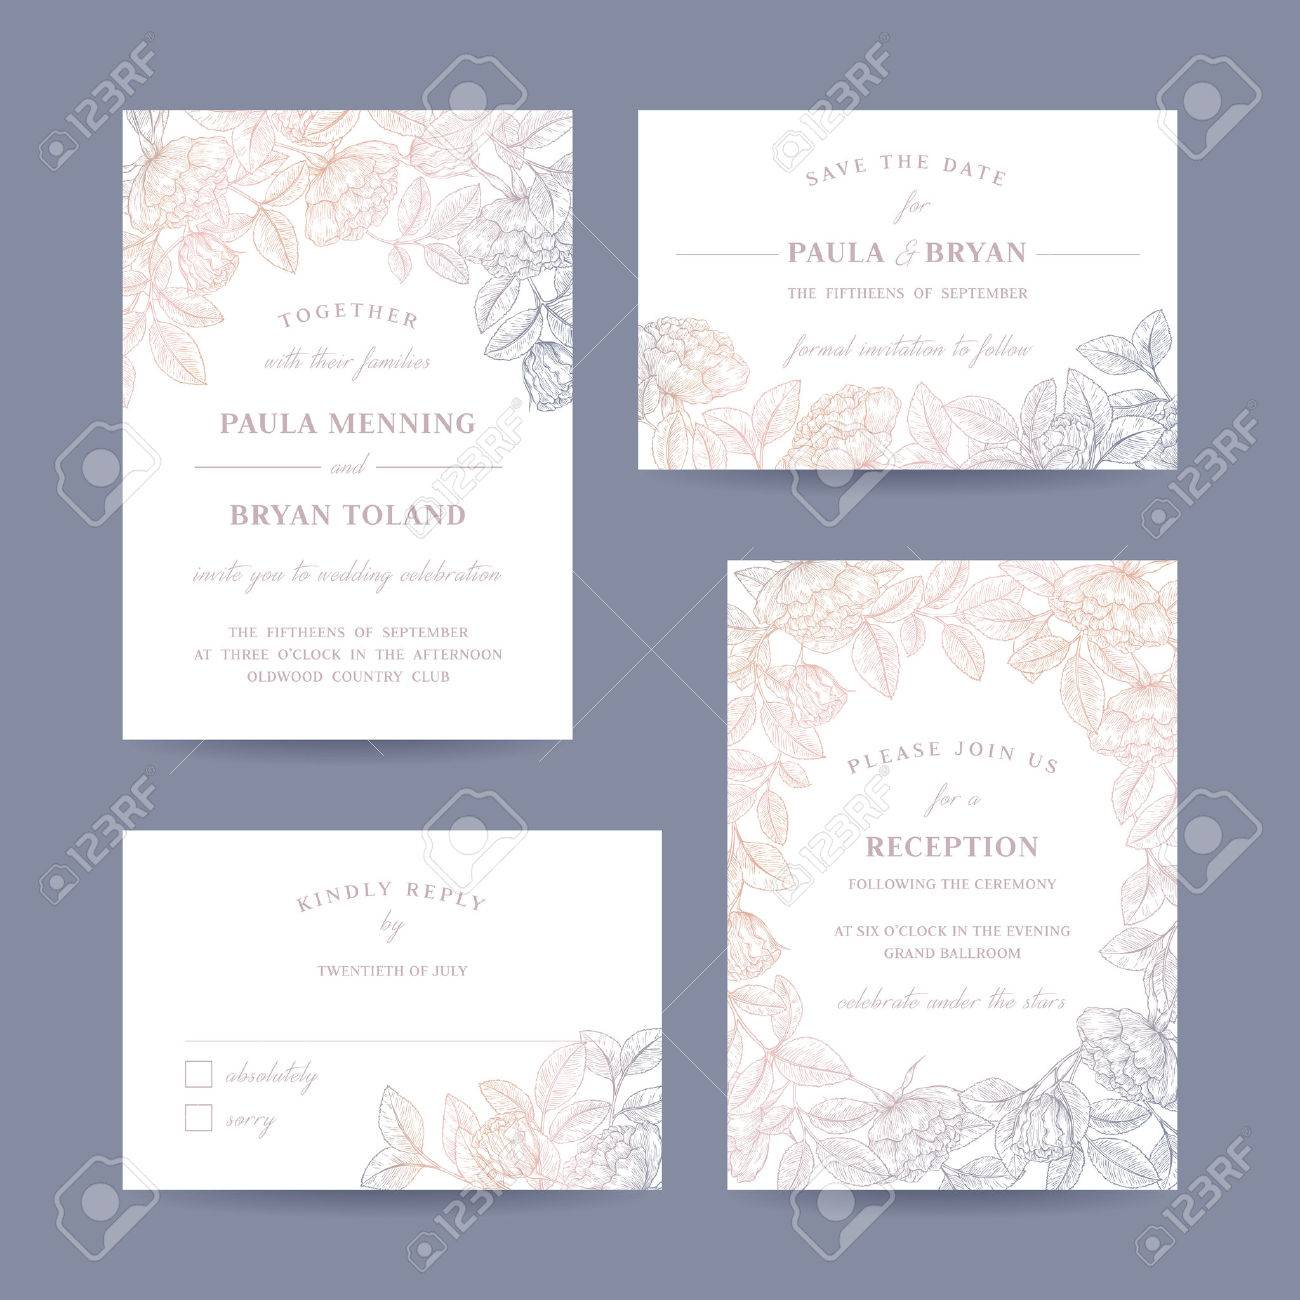 Hand drawn rose garden wedding invitation card collection. Invitation, Save the date, RSVP, Reception, Thank you card template with floral background. - 65082545